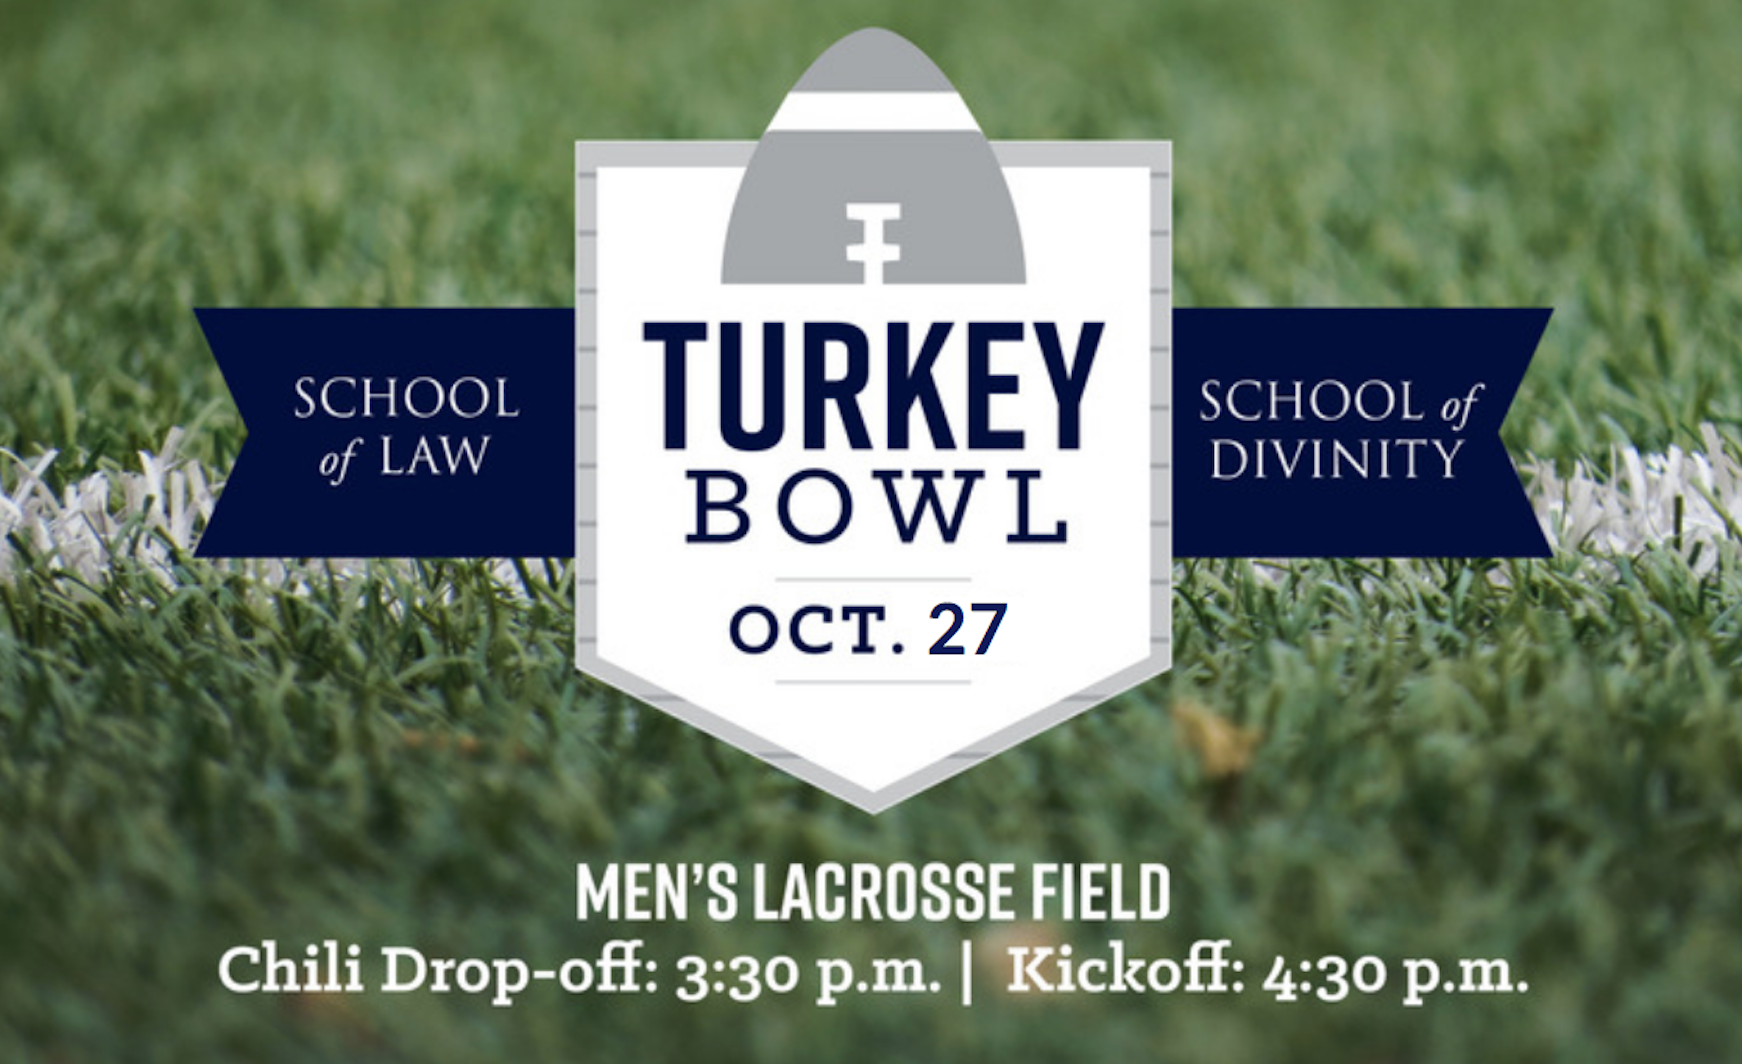 Turkey Bowl Event School of Divinity